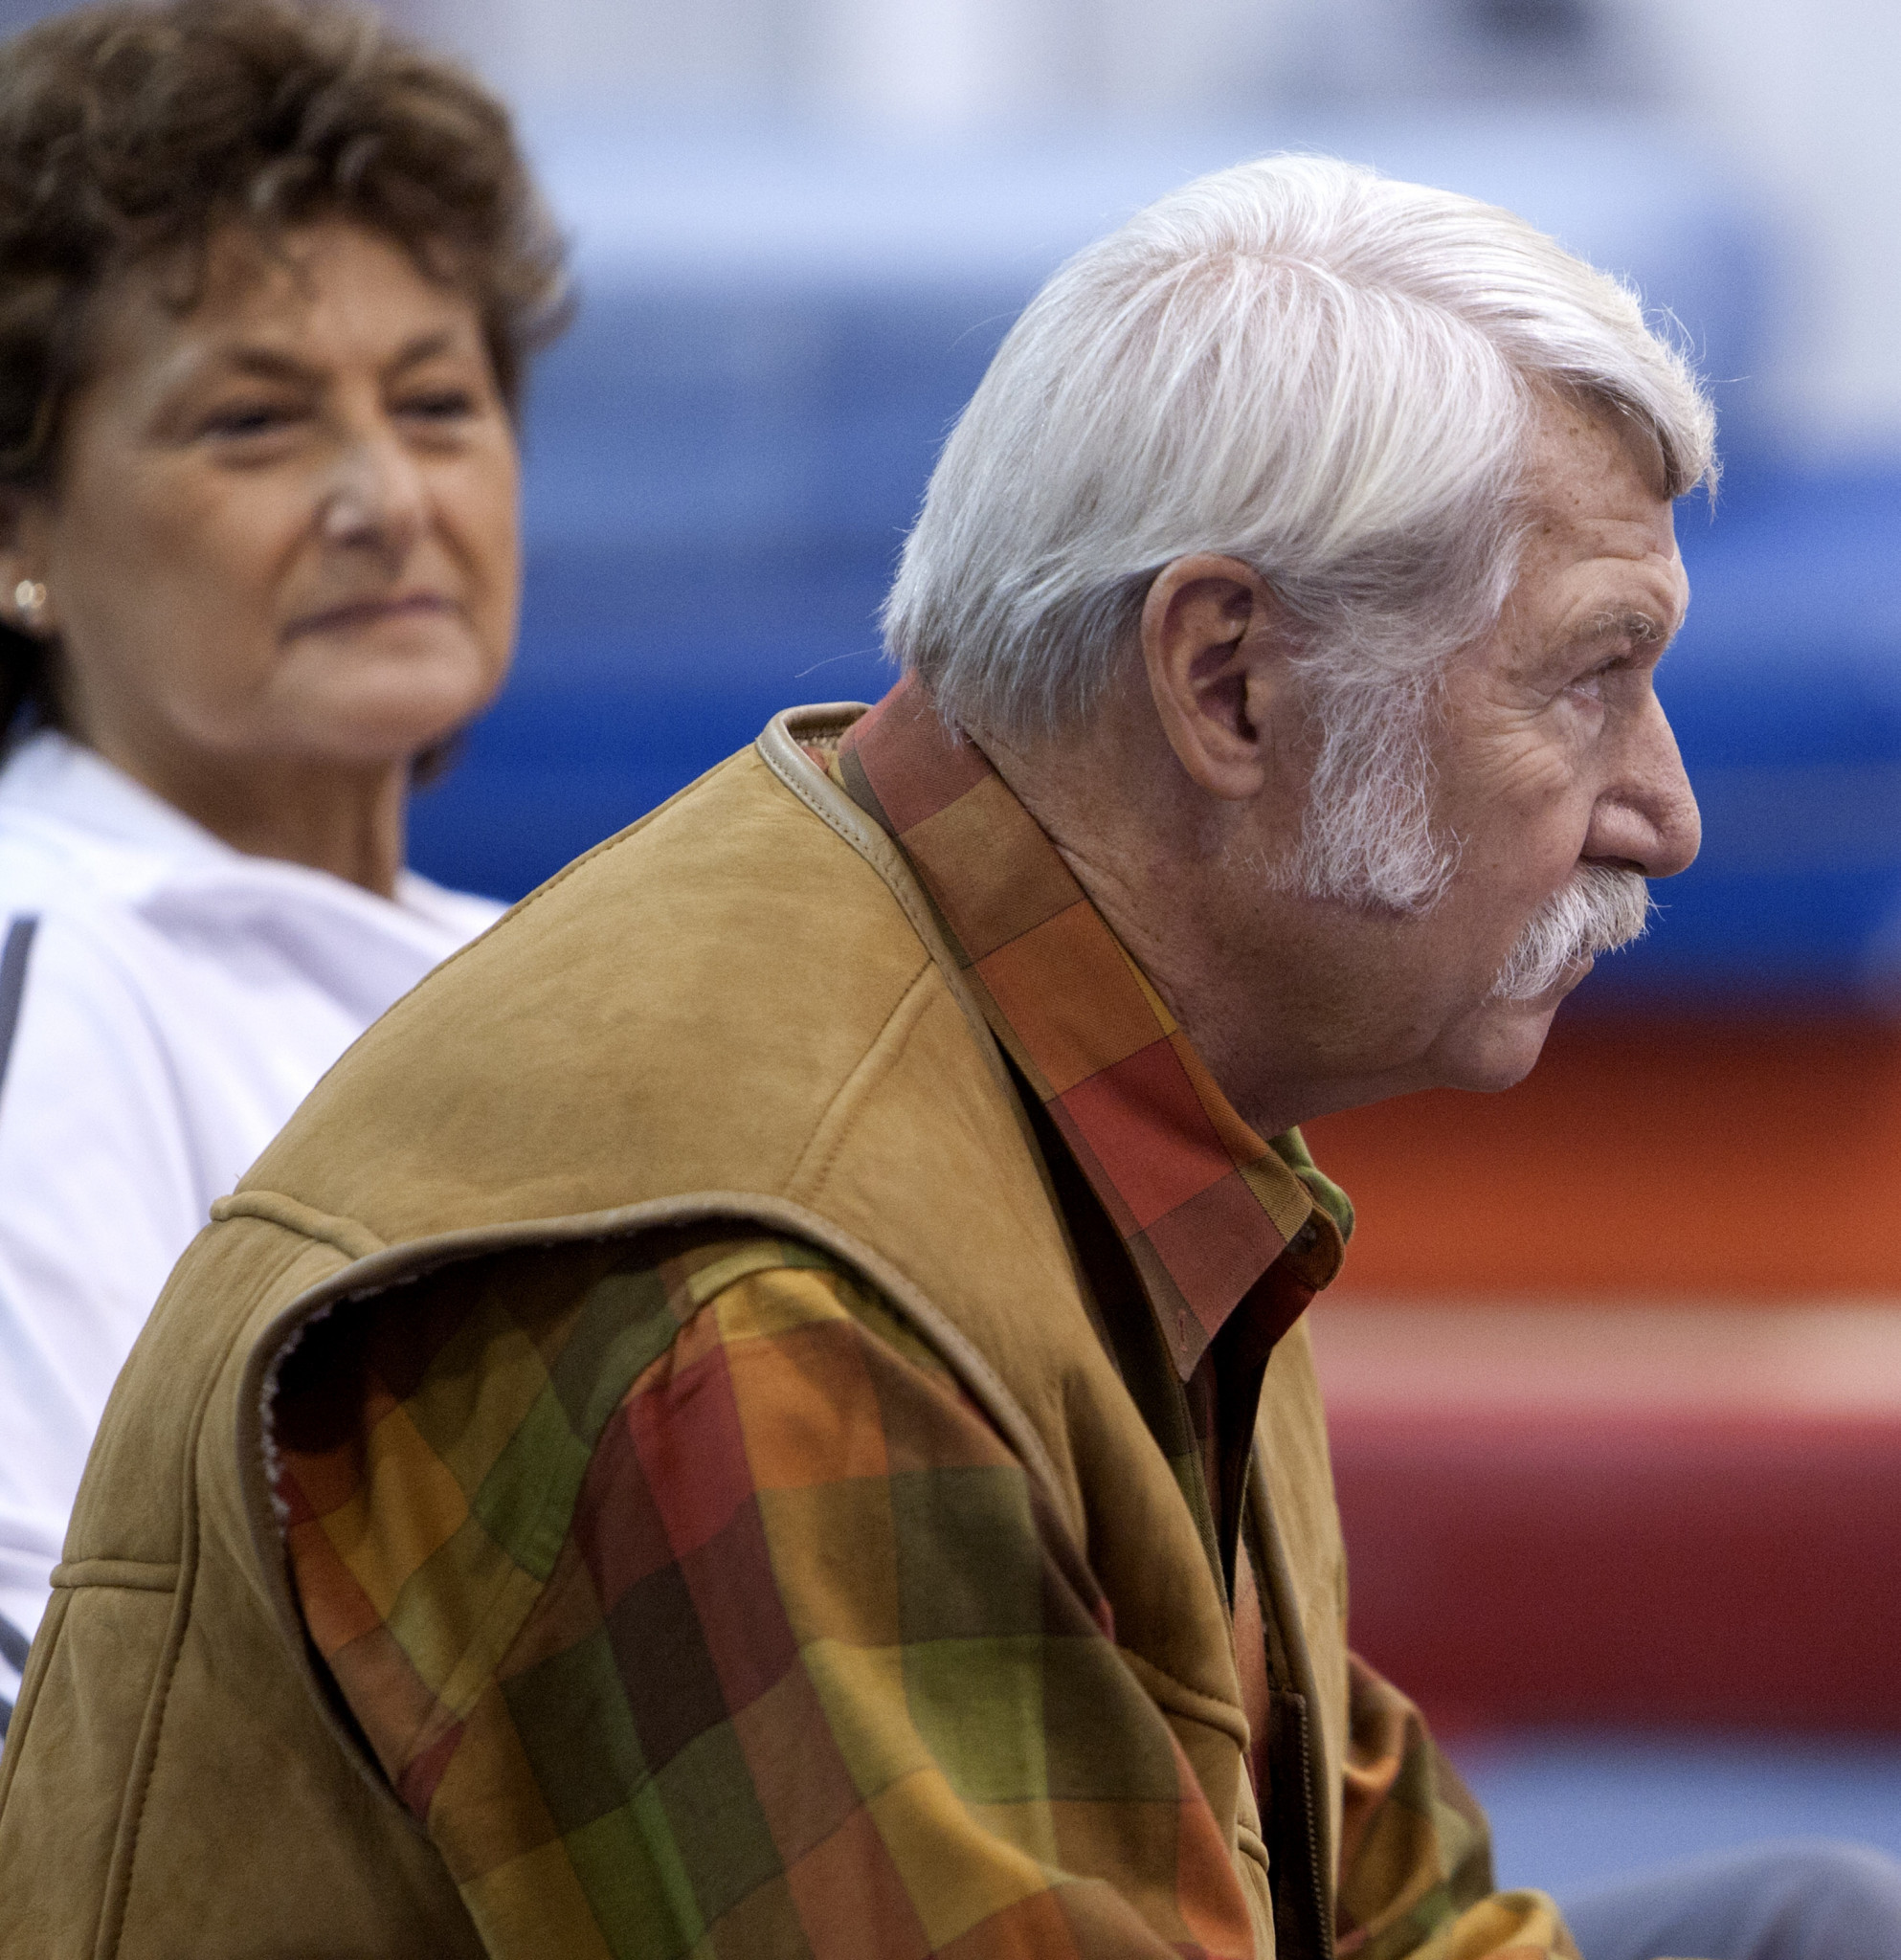 Martha and Bela Karolyi are bringing a lawsuit against USA Gymnastics for cutting ties with their gymnastics training centre in Texas, where Larry Nassar carried out much of his sexual abuse ©Getty Images